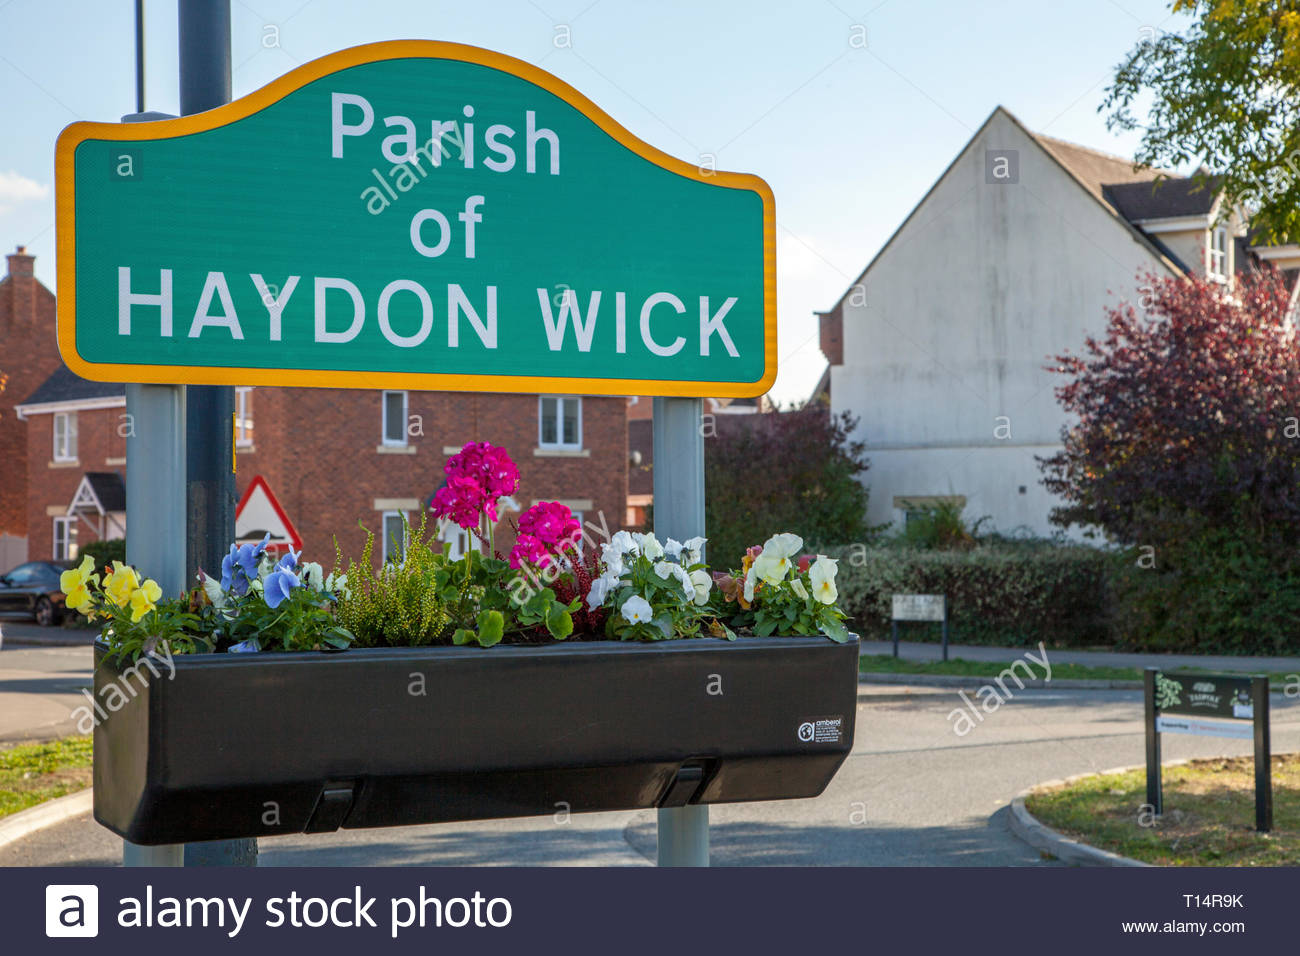 'window box' with flowers, underneath a Parish of Haydon Wick sign, in Tadpole Garden Village, Swindon, England, UK - Stock Image